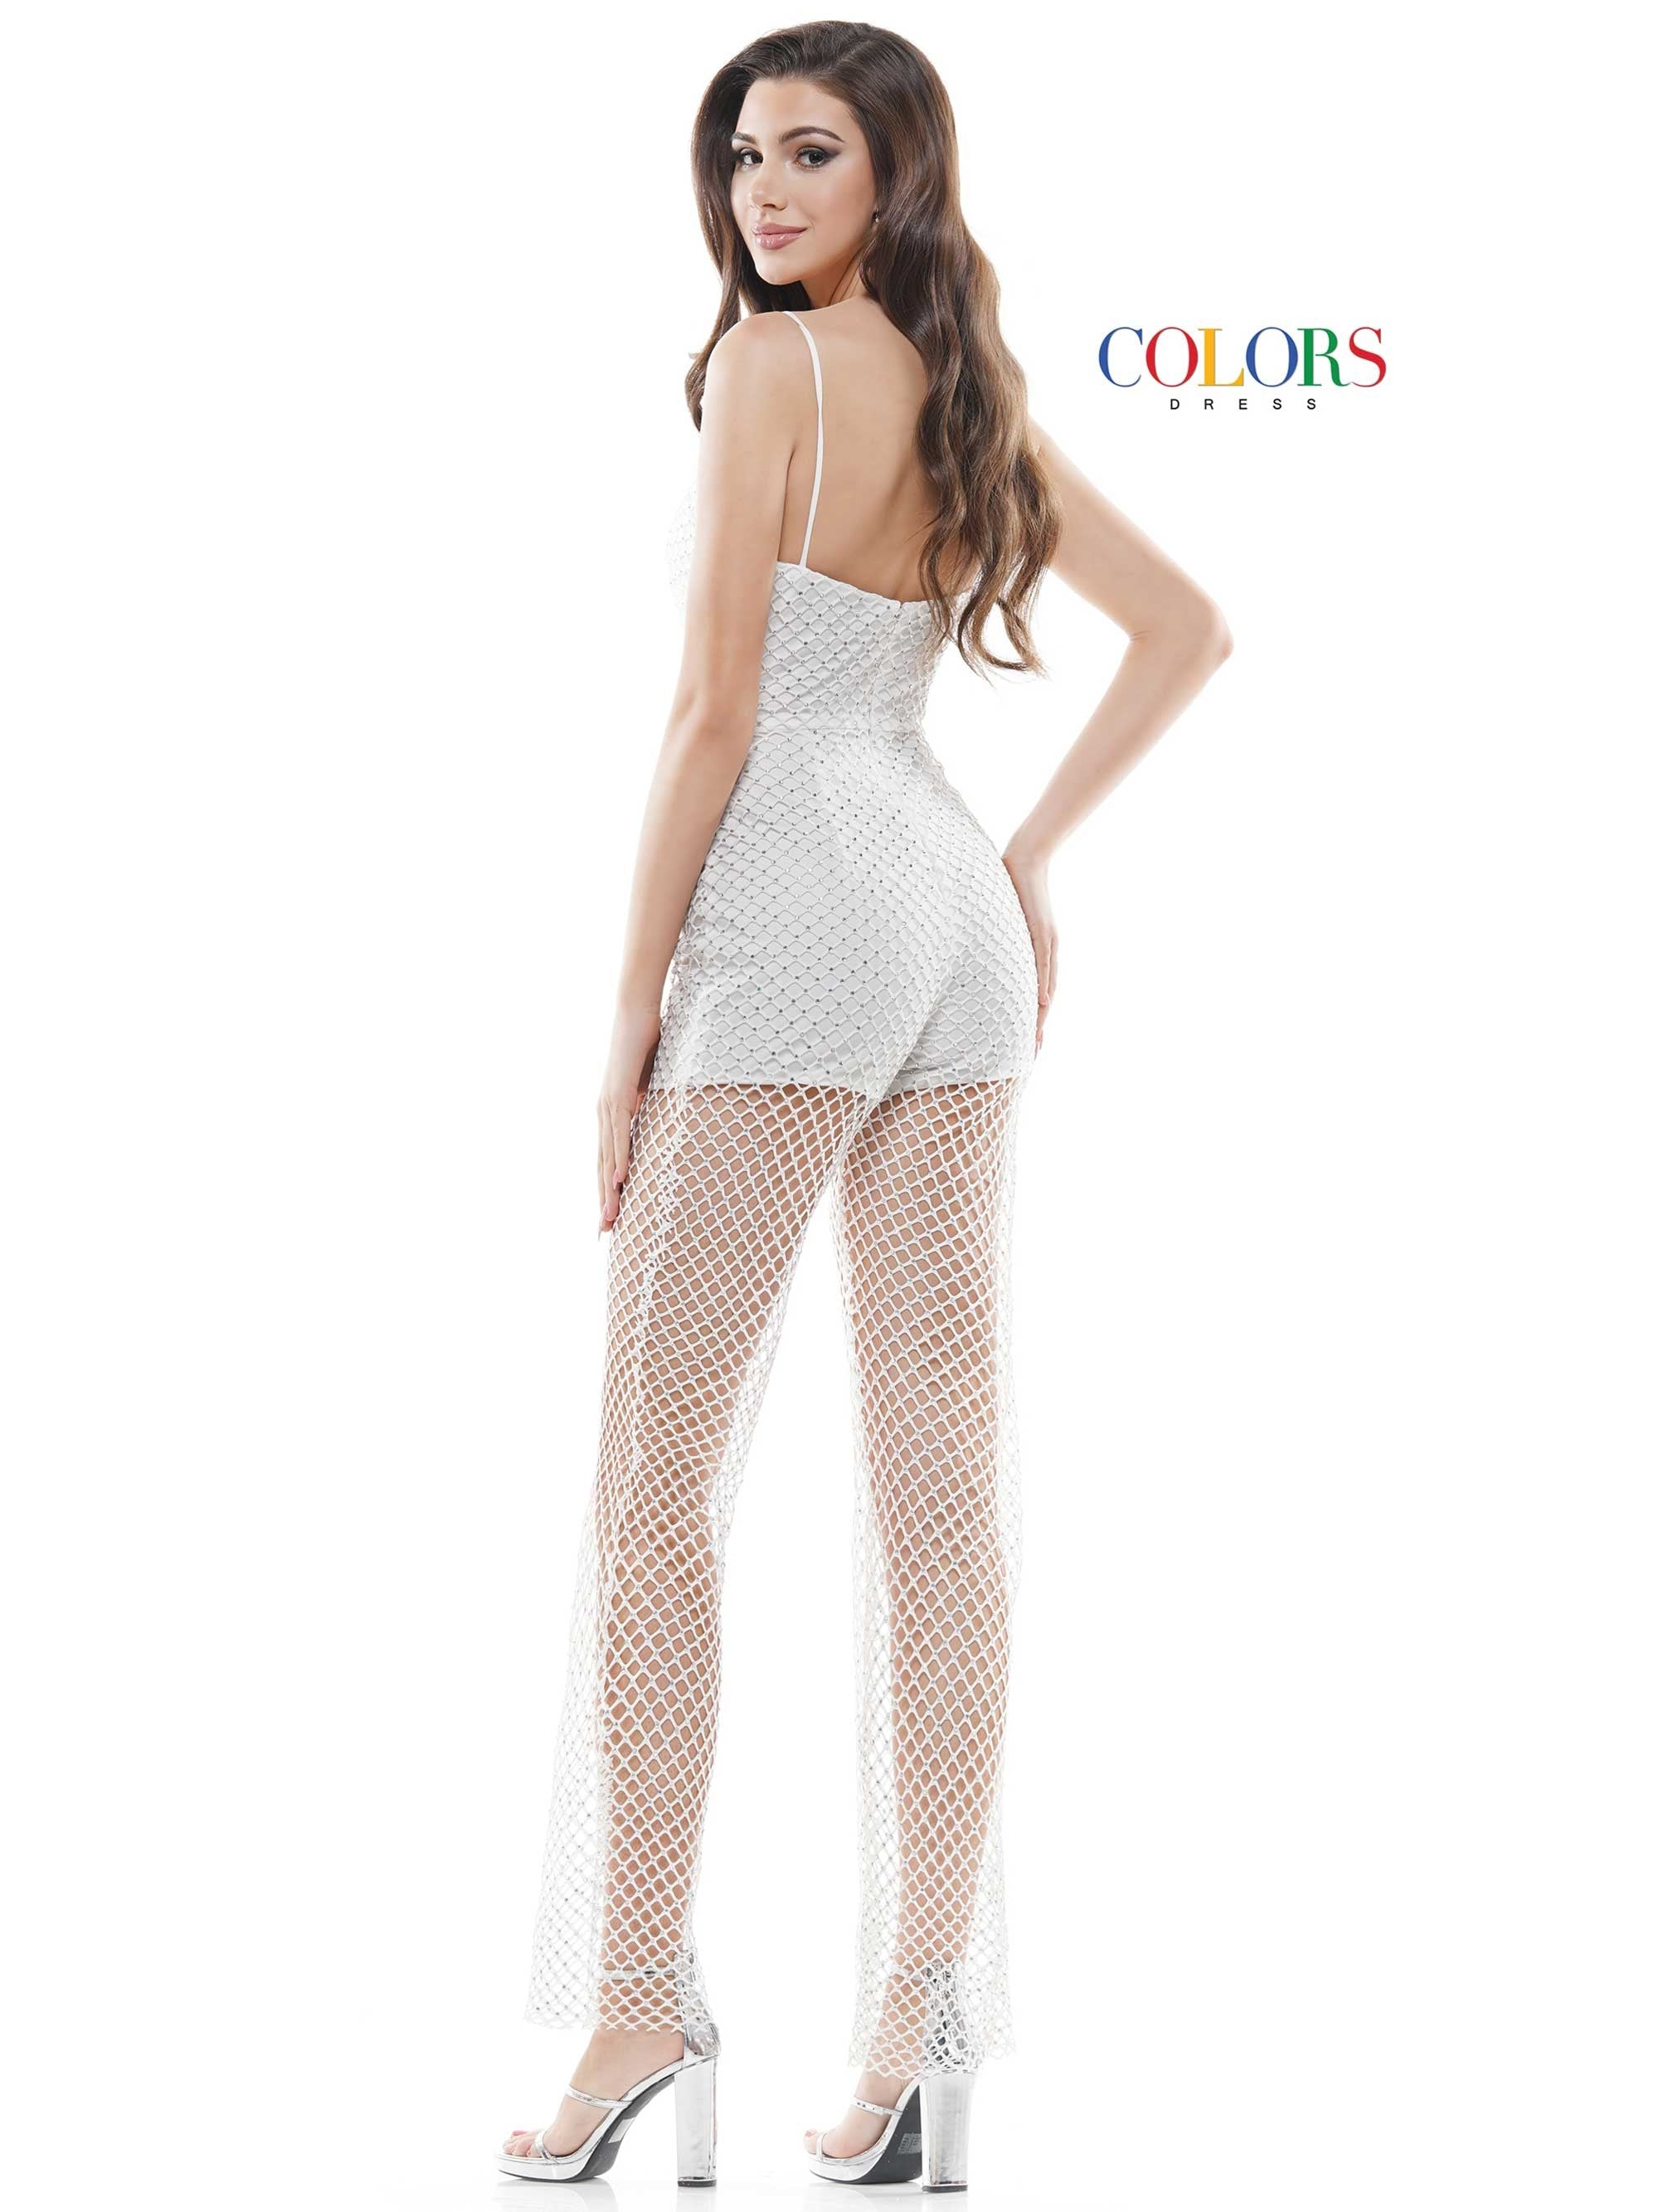 2439 -  rhinestone mesh jumpsuit with sheer leg, square neckline